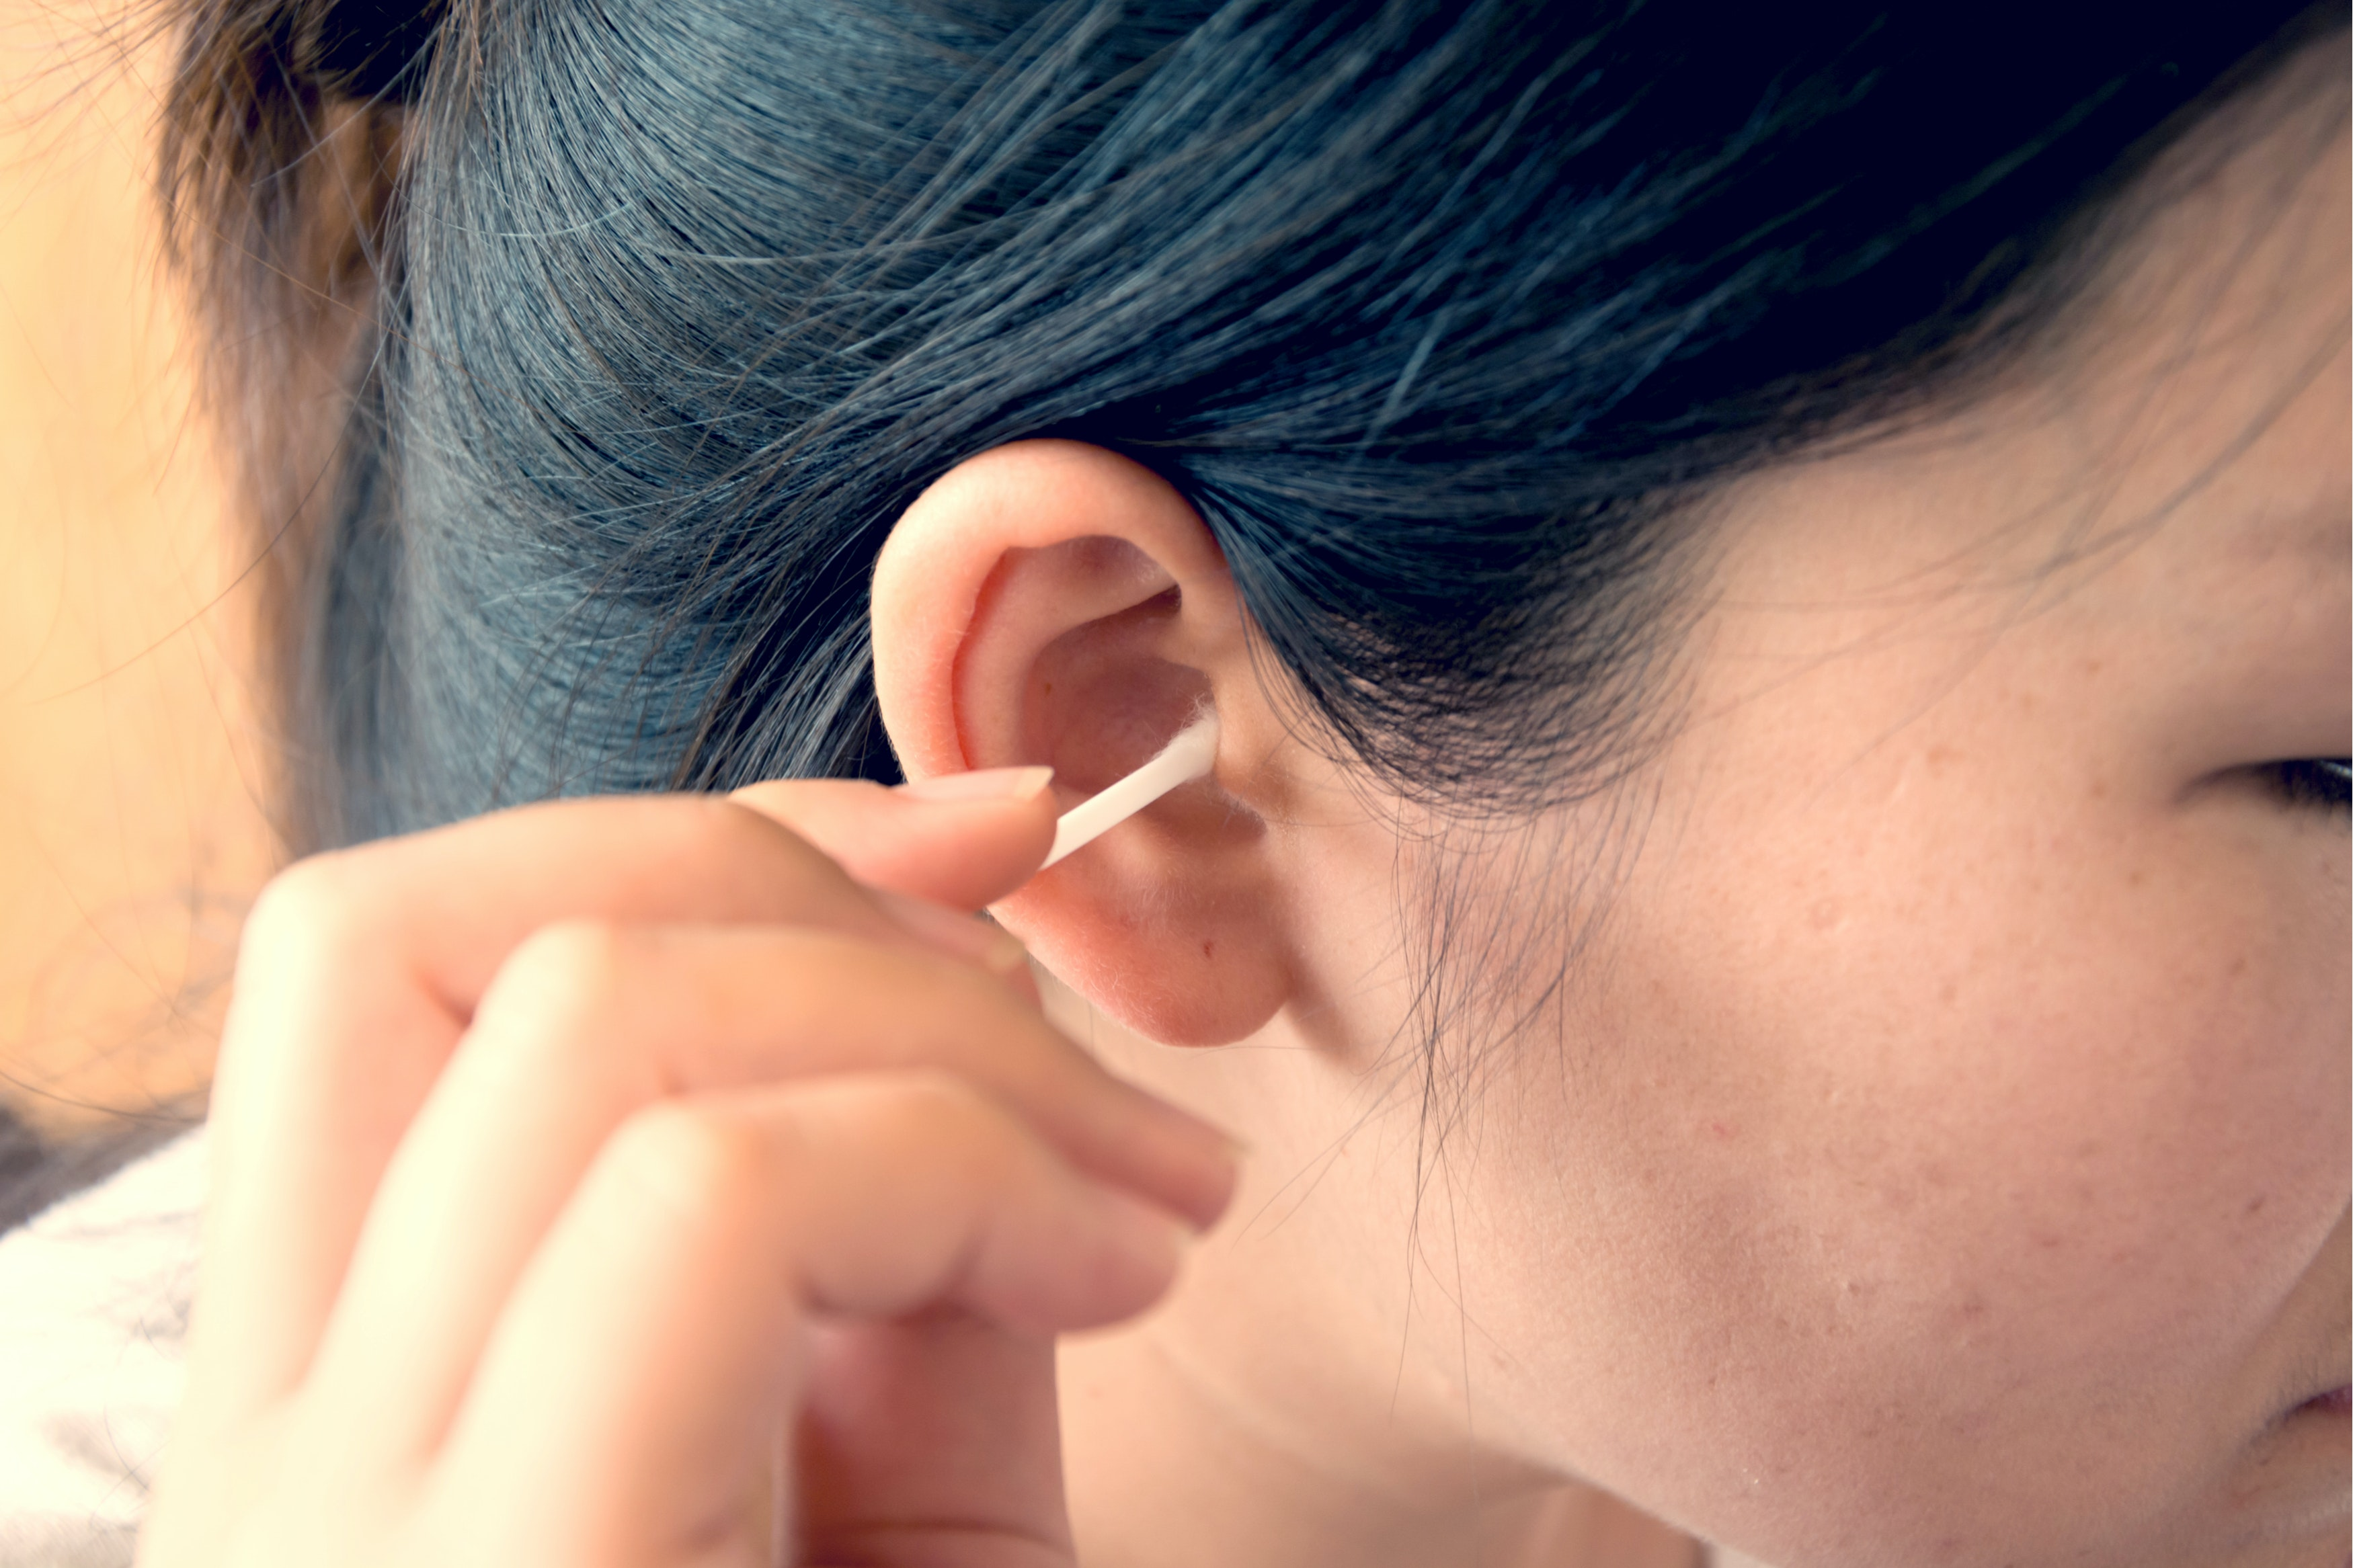 An image depicting a person suffering from ear discharge symptoms